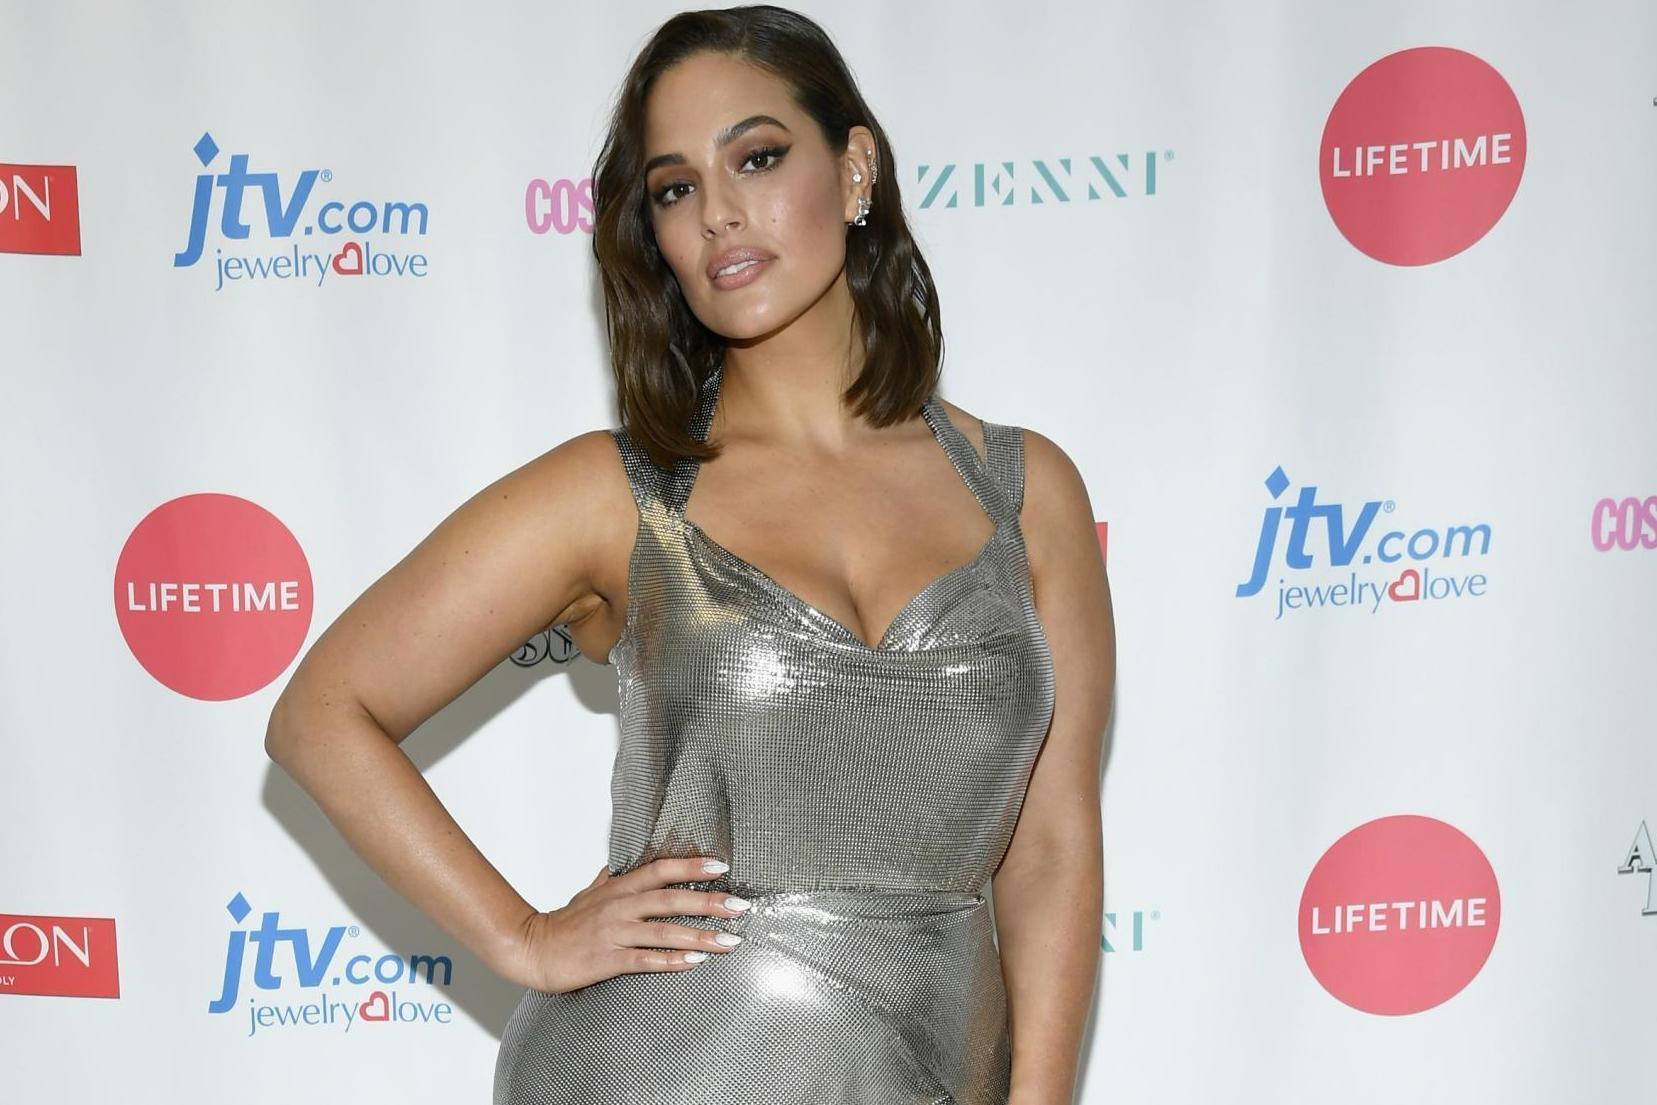 Ashley Graham says looking at her stretch marks reminds her women are 'superheroes'